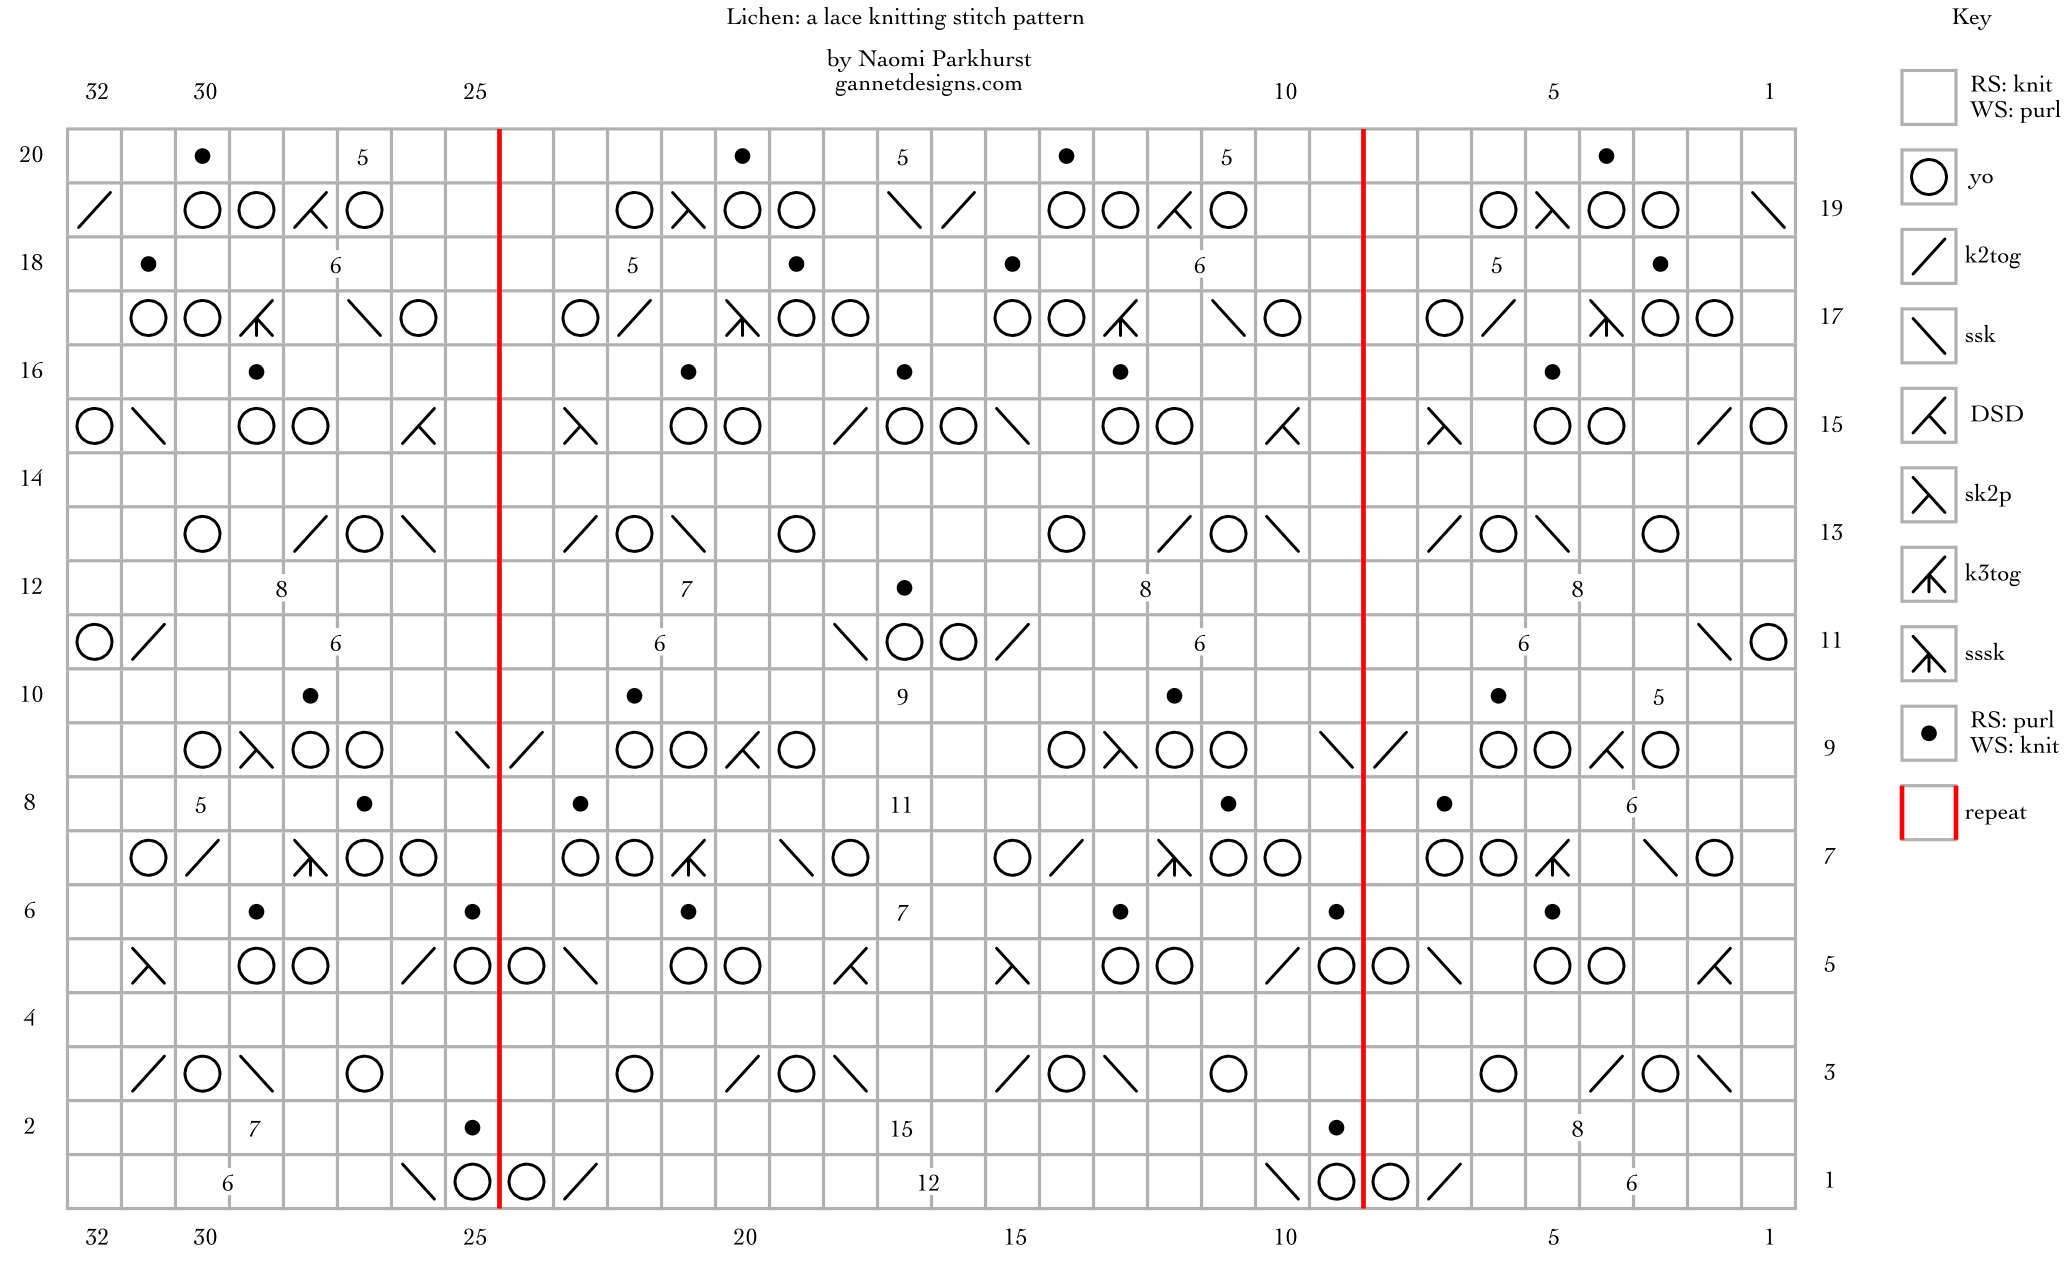 chart showing how to knit Lichen lace by means of special symbols. Written instructions in blog post.